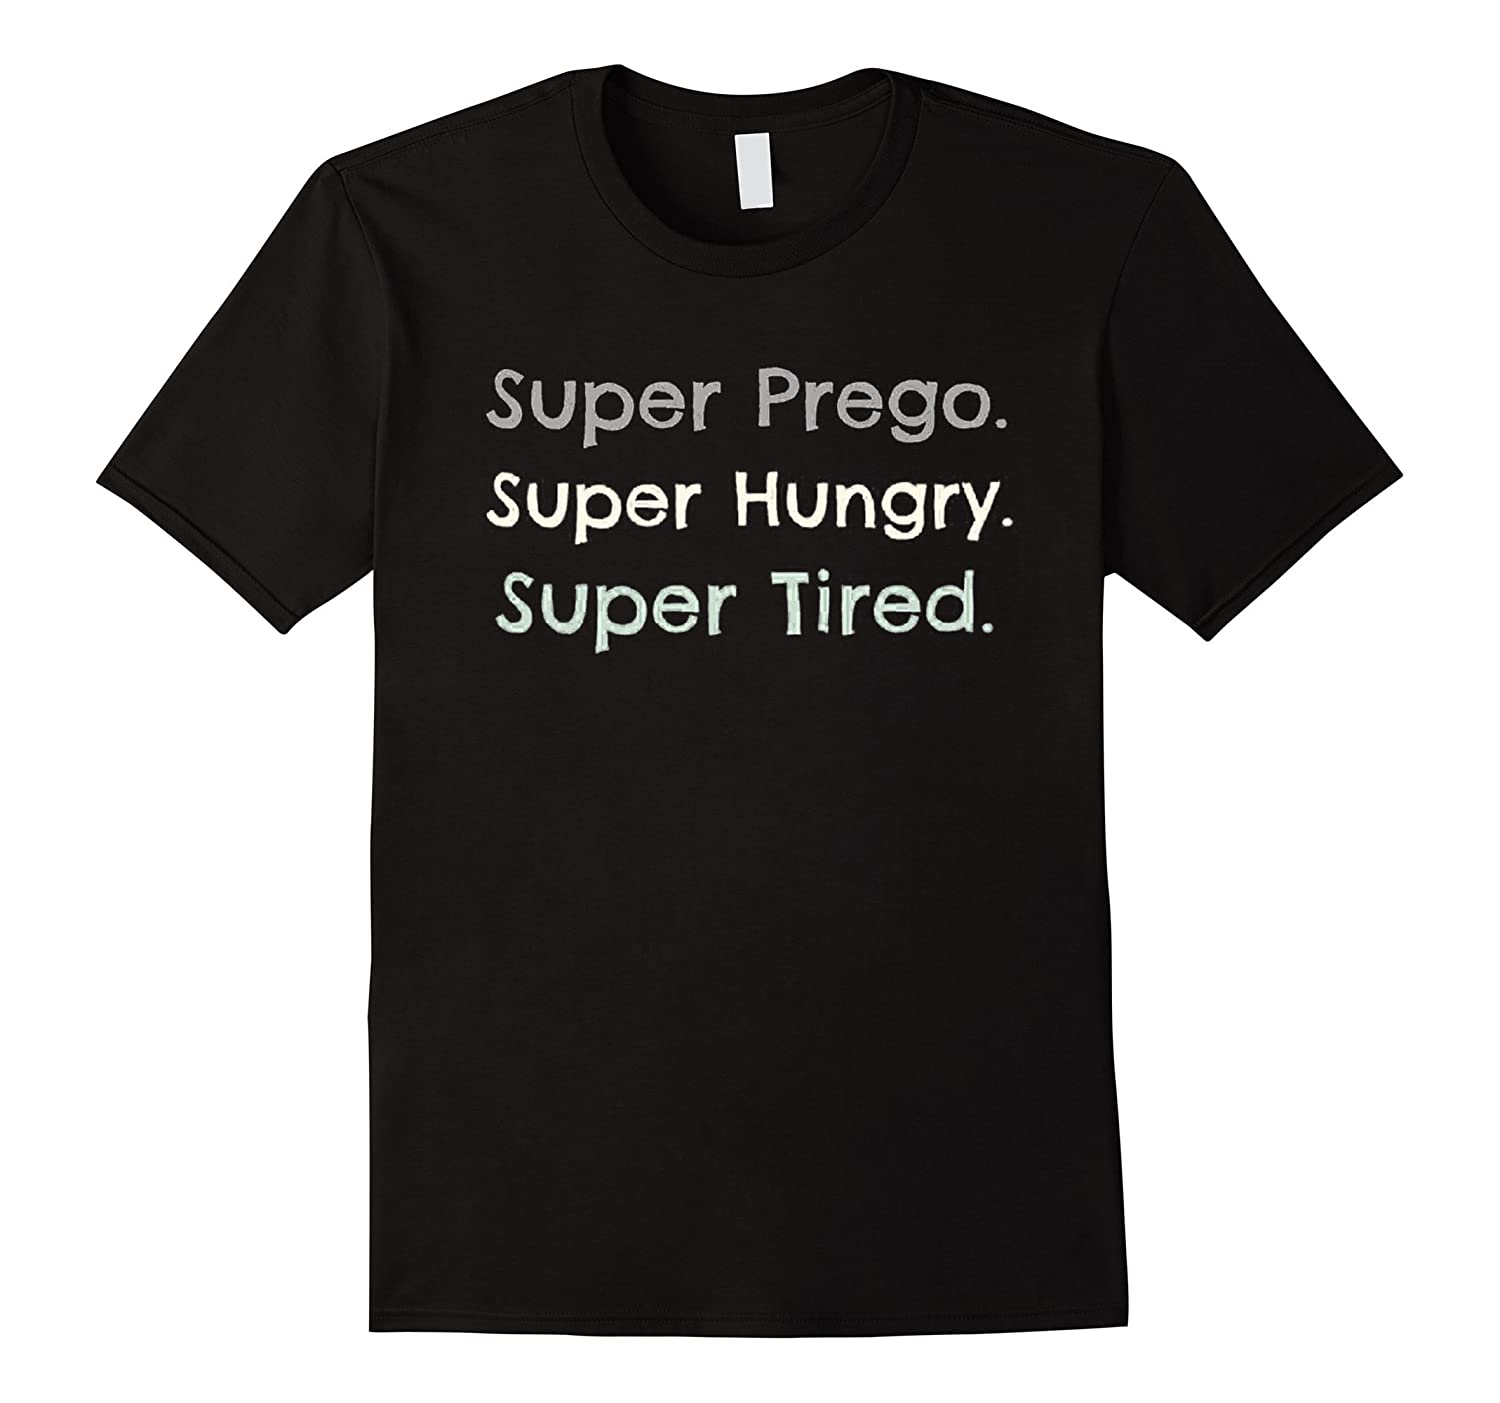 a606f19406ea7 Super Prego Hungry Tired Pregnancy Baby Shower Mothers Day-RT. Home / T- Shirt